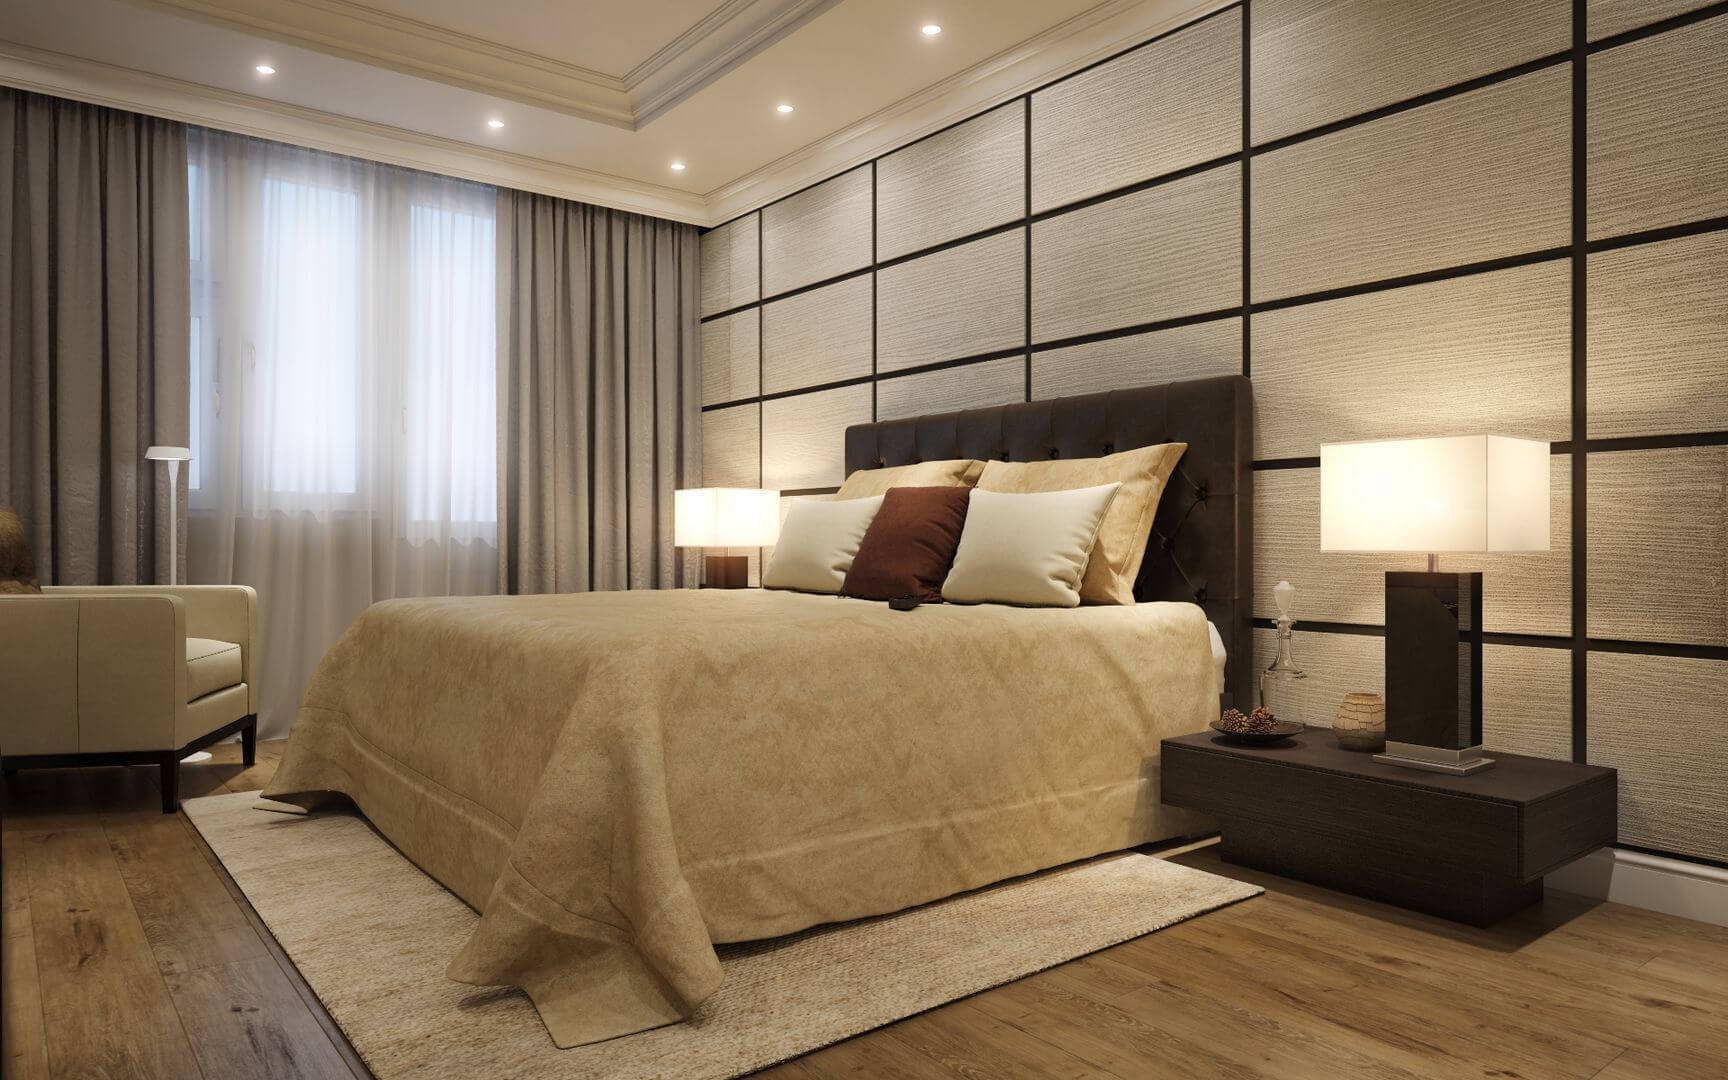 Decorative panels for interior wall decoration: main types